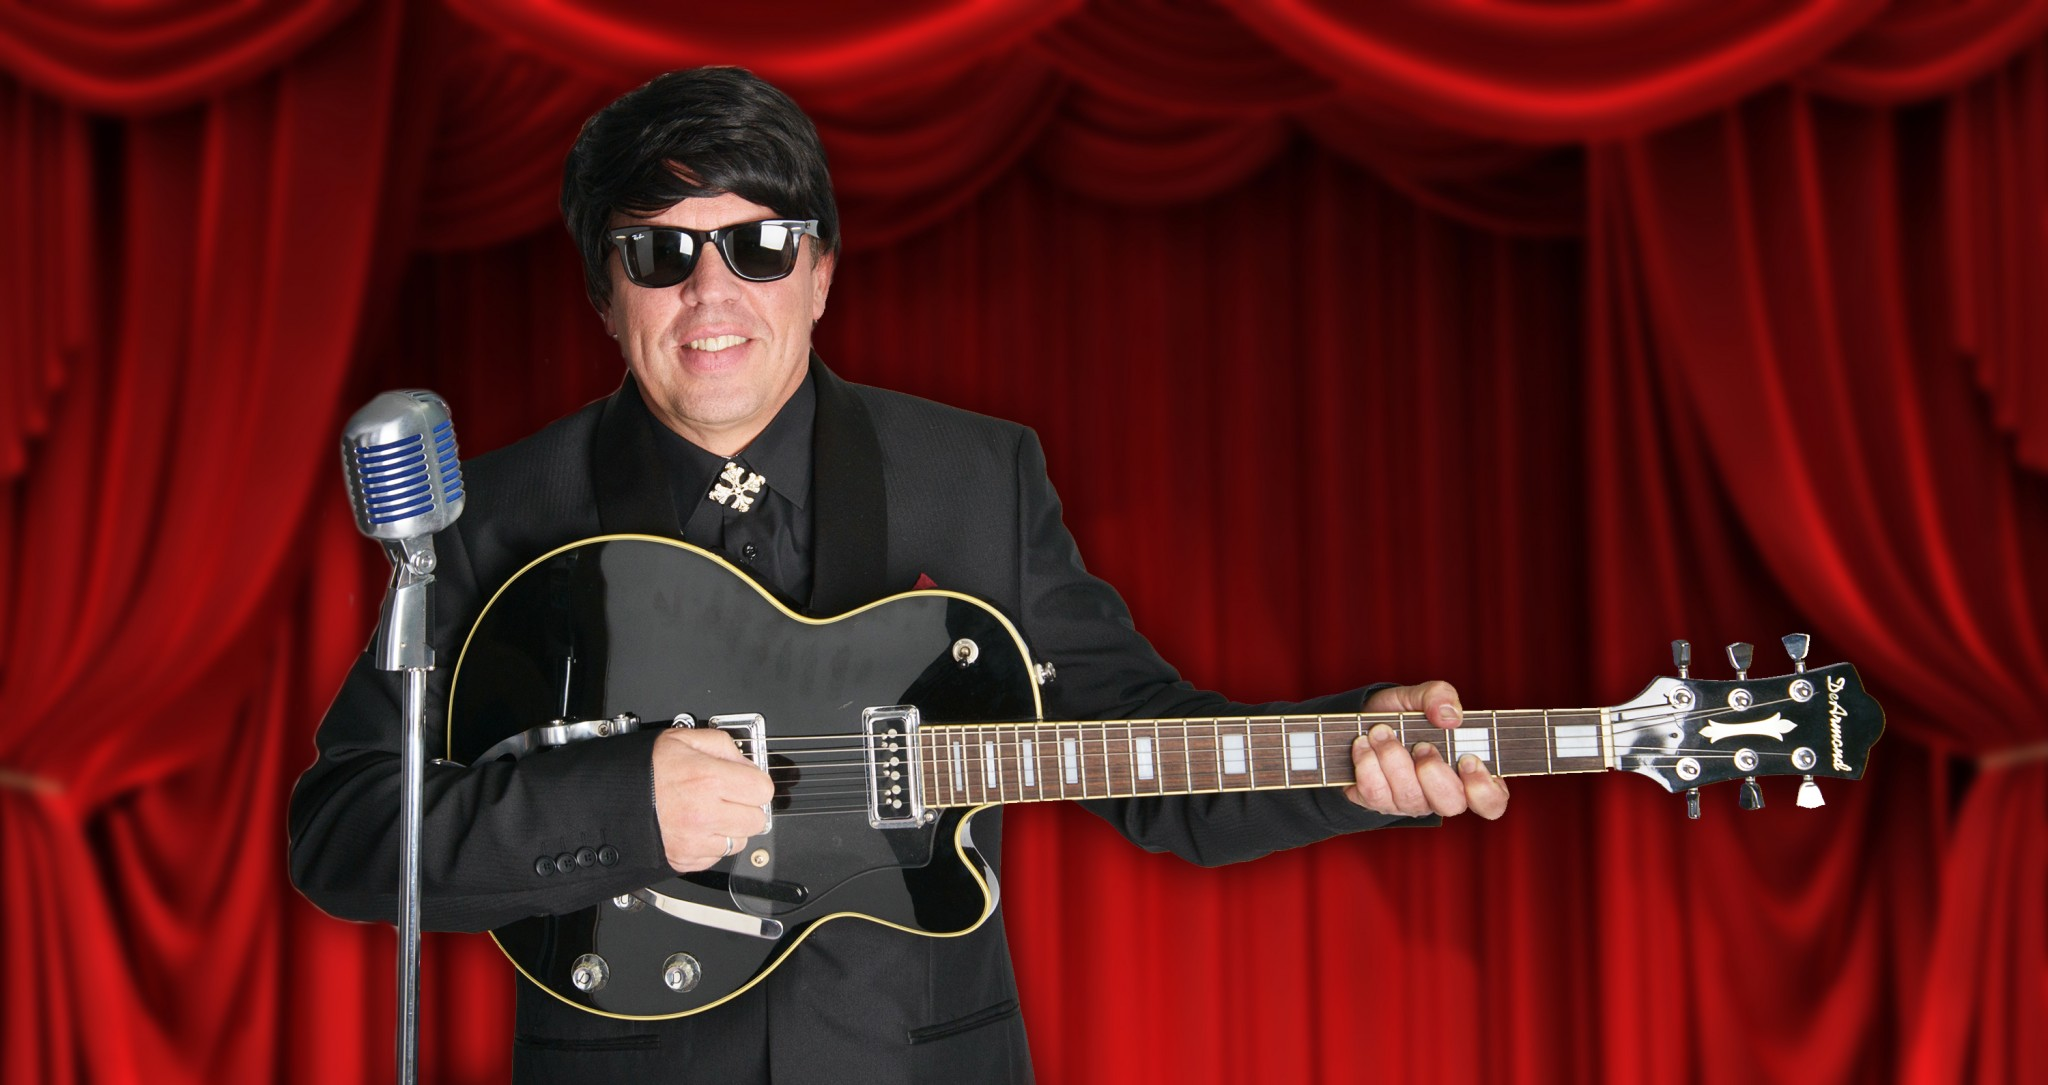 Orbison Horizontal Curtains - ROY ORBISON - ALL STAR TRIBUTE